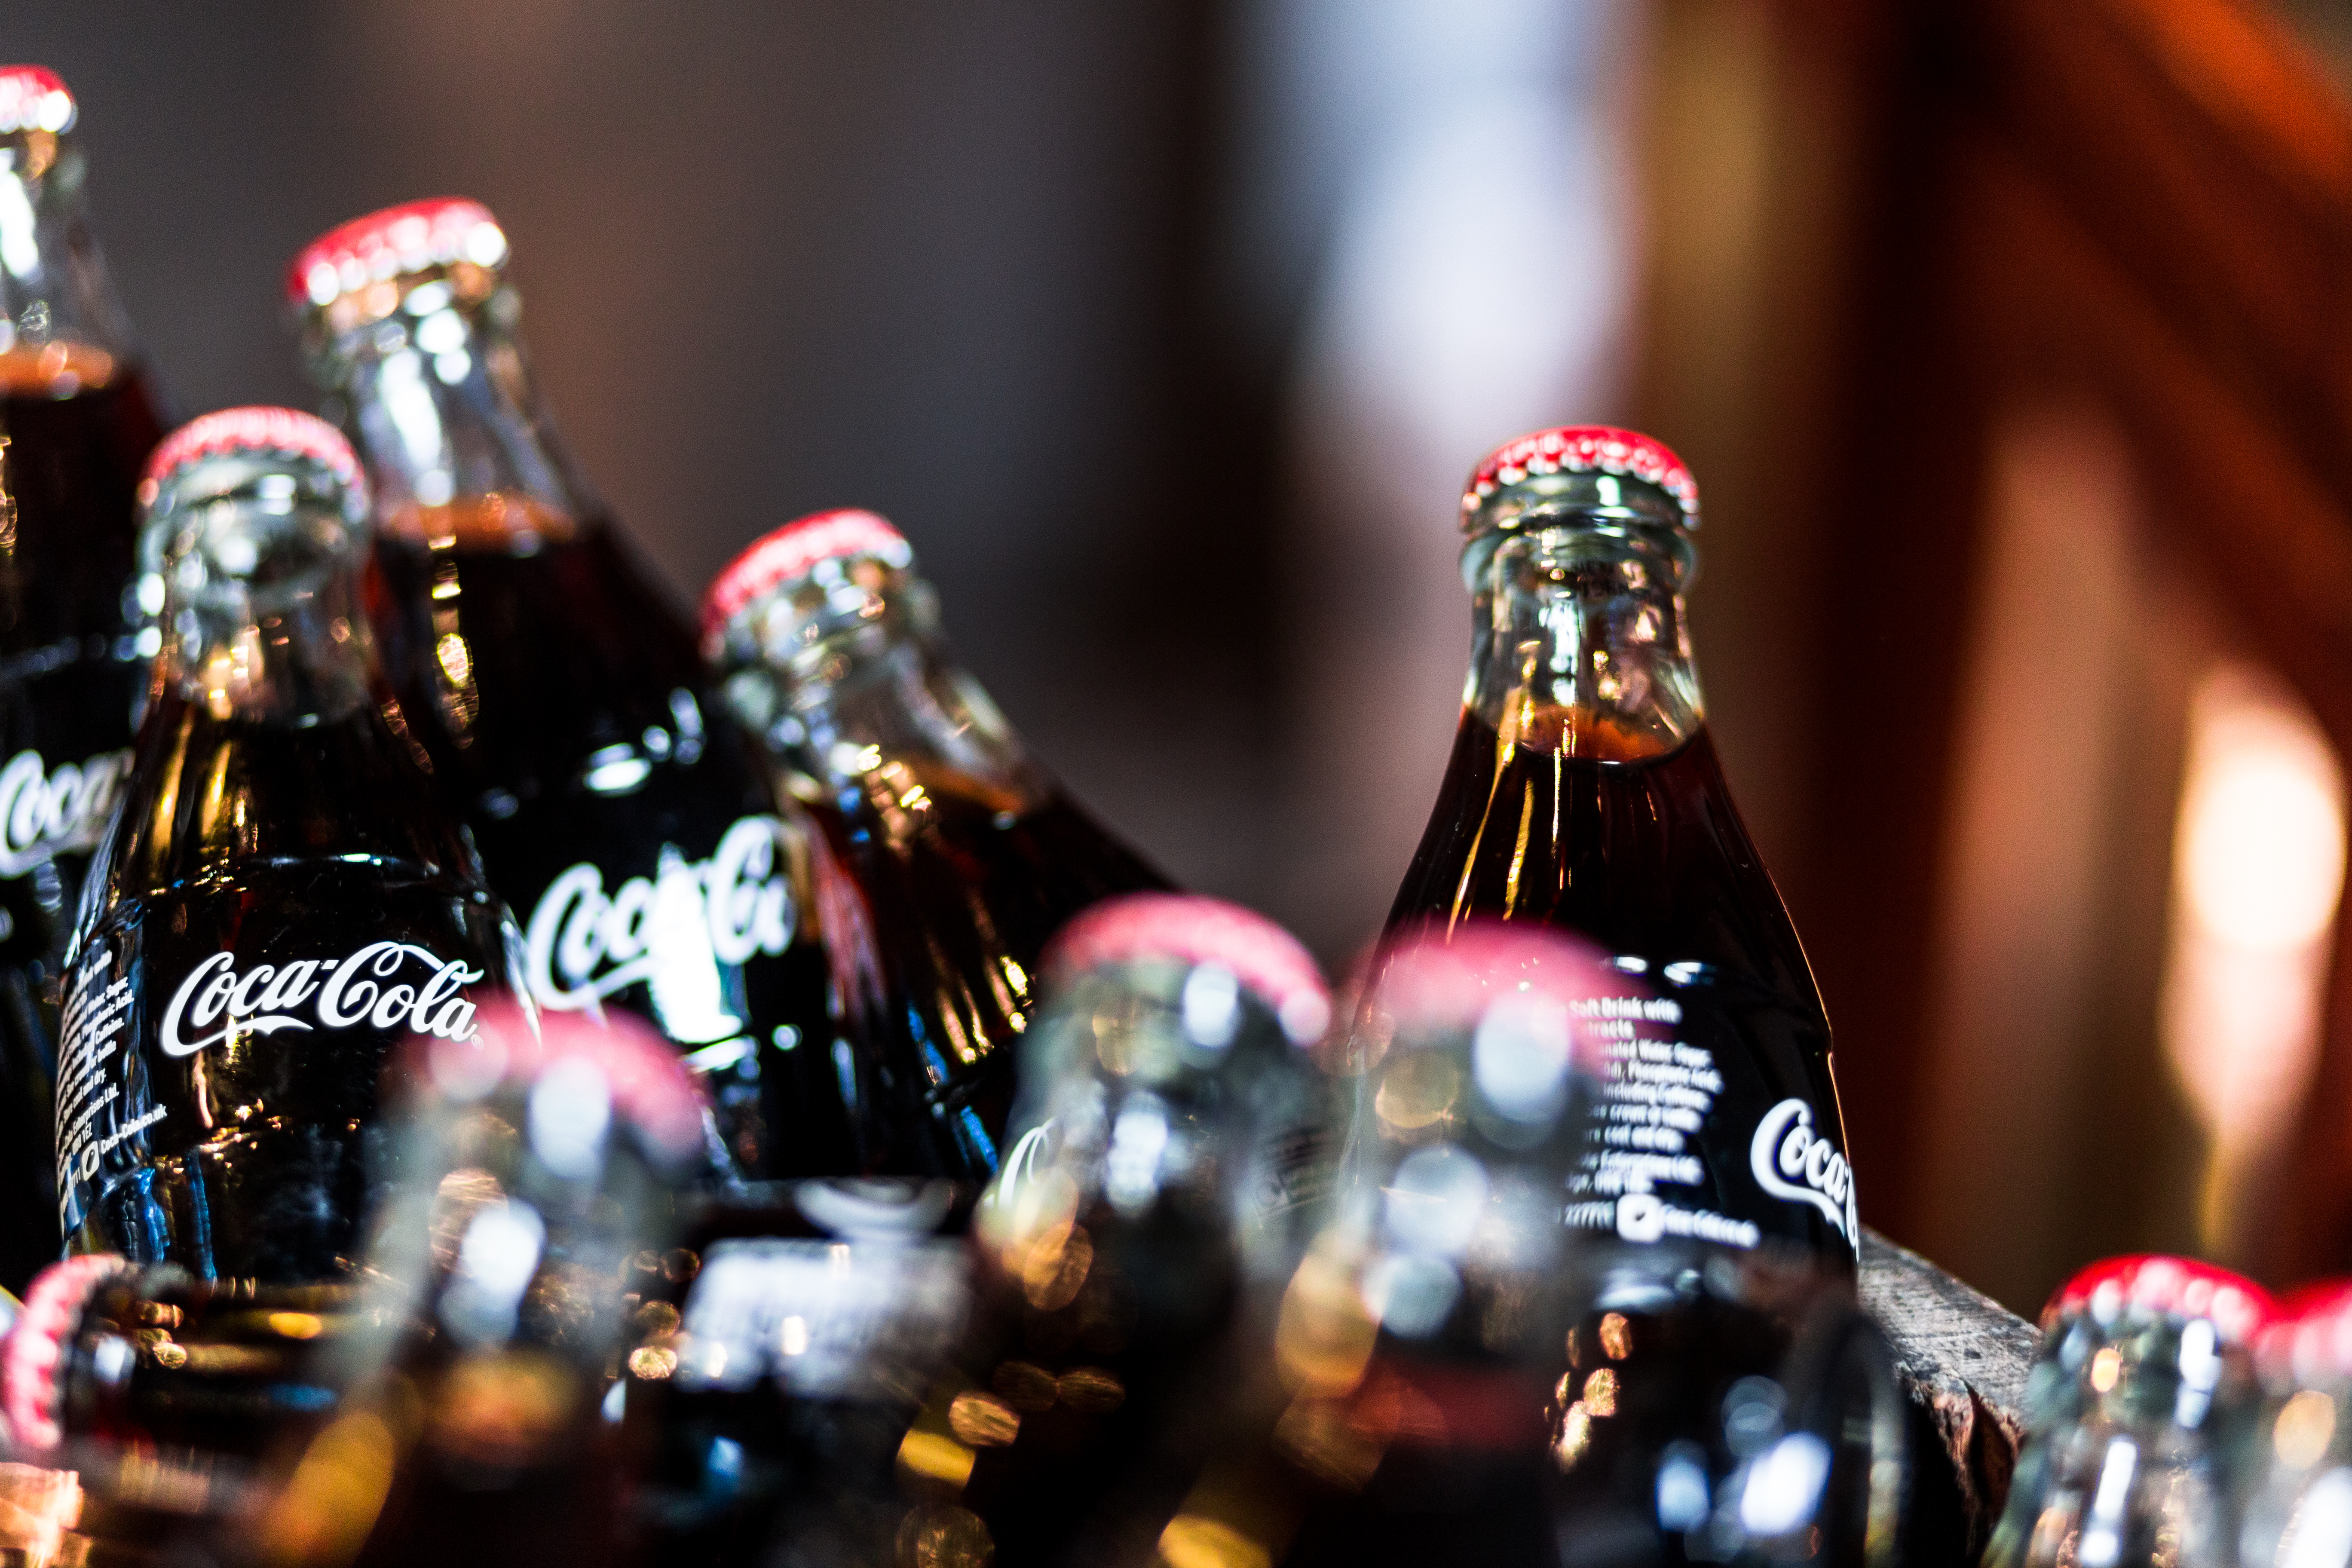 Coca-cola Posts Upbeat First Quarter Results Thanks To Focus On Healthier Drinks photo